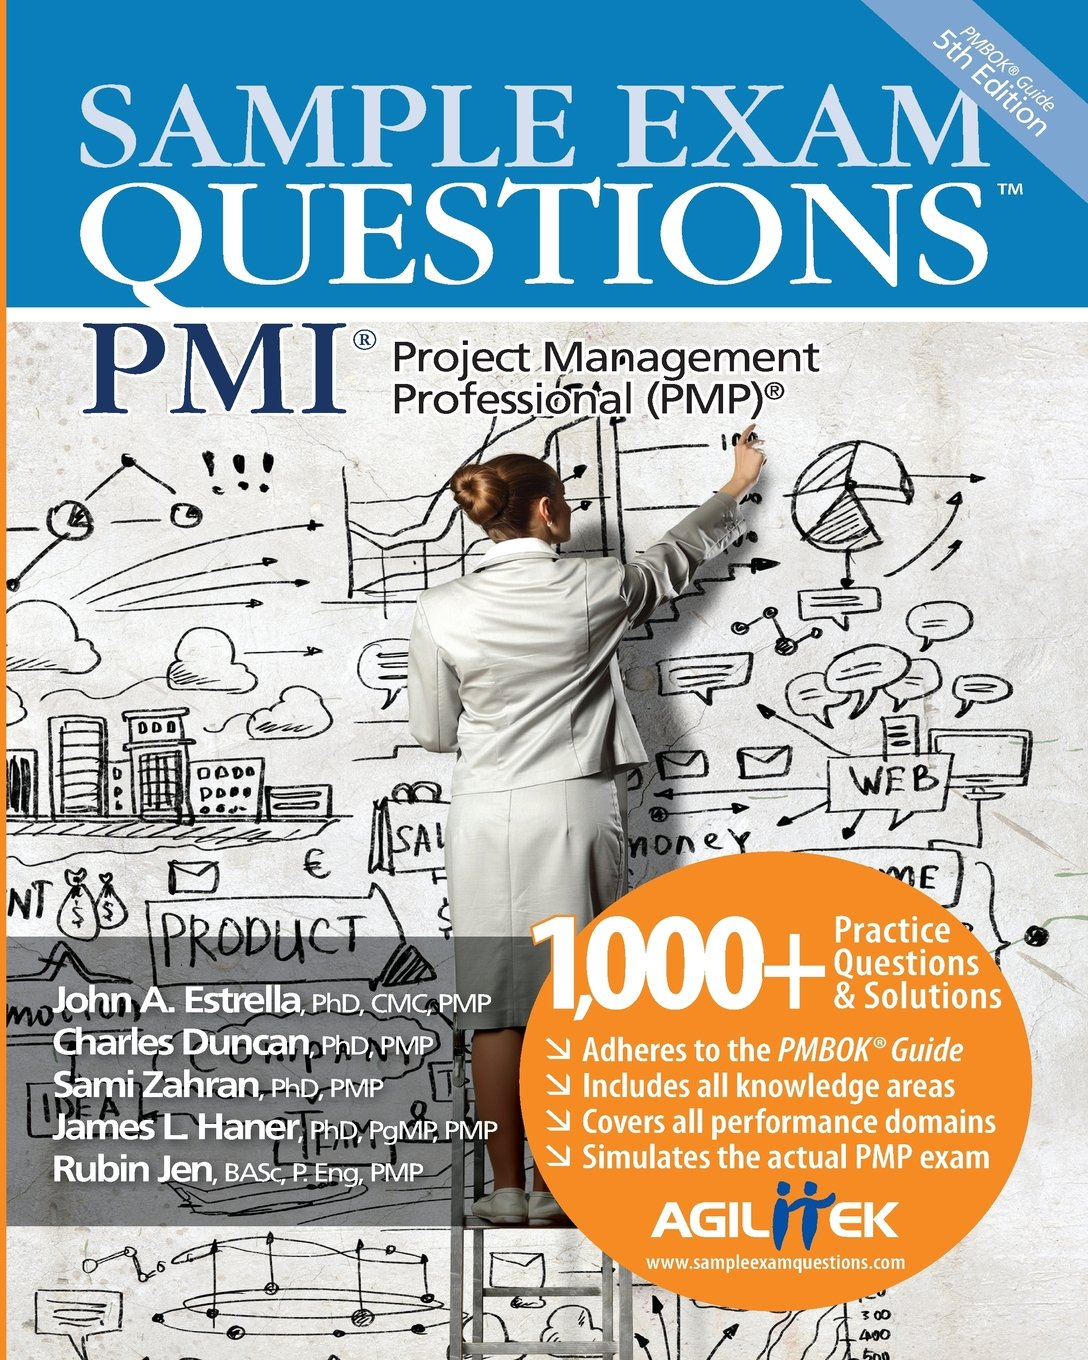 sample exam questions pmi project management professional pmp sample exam questions pmi project management professional pmp amazon co uk john a estrella charles duncan sami zahran james l haner